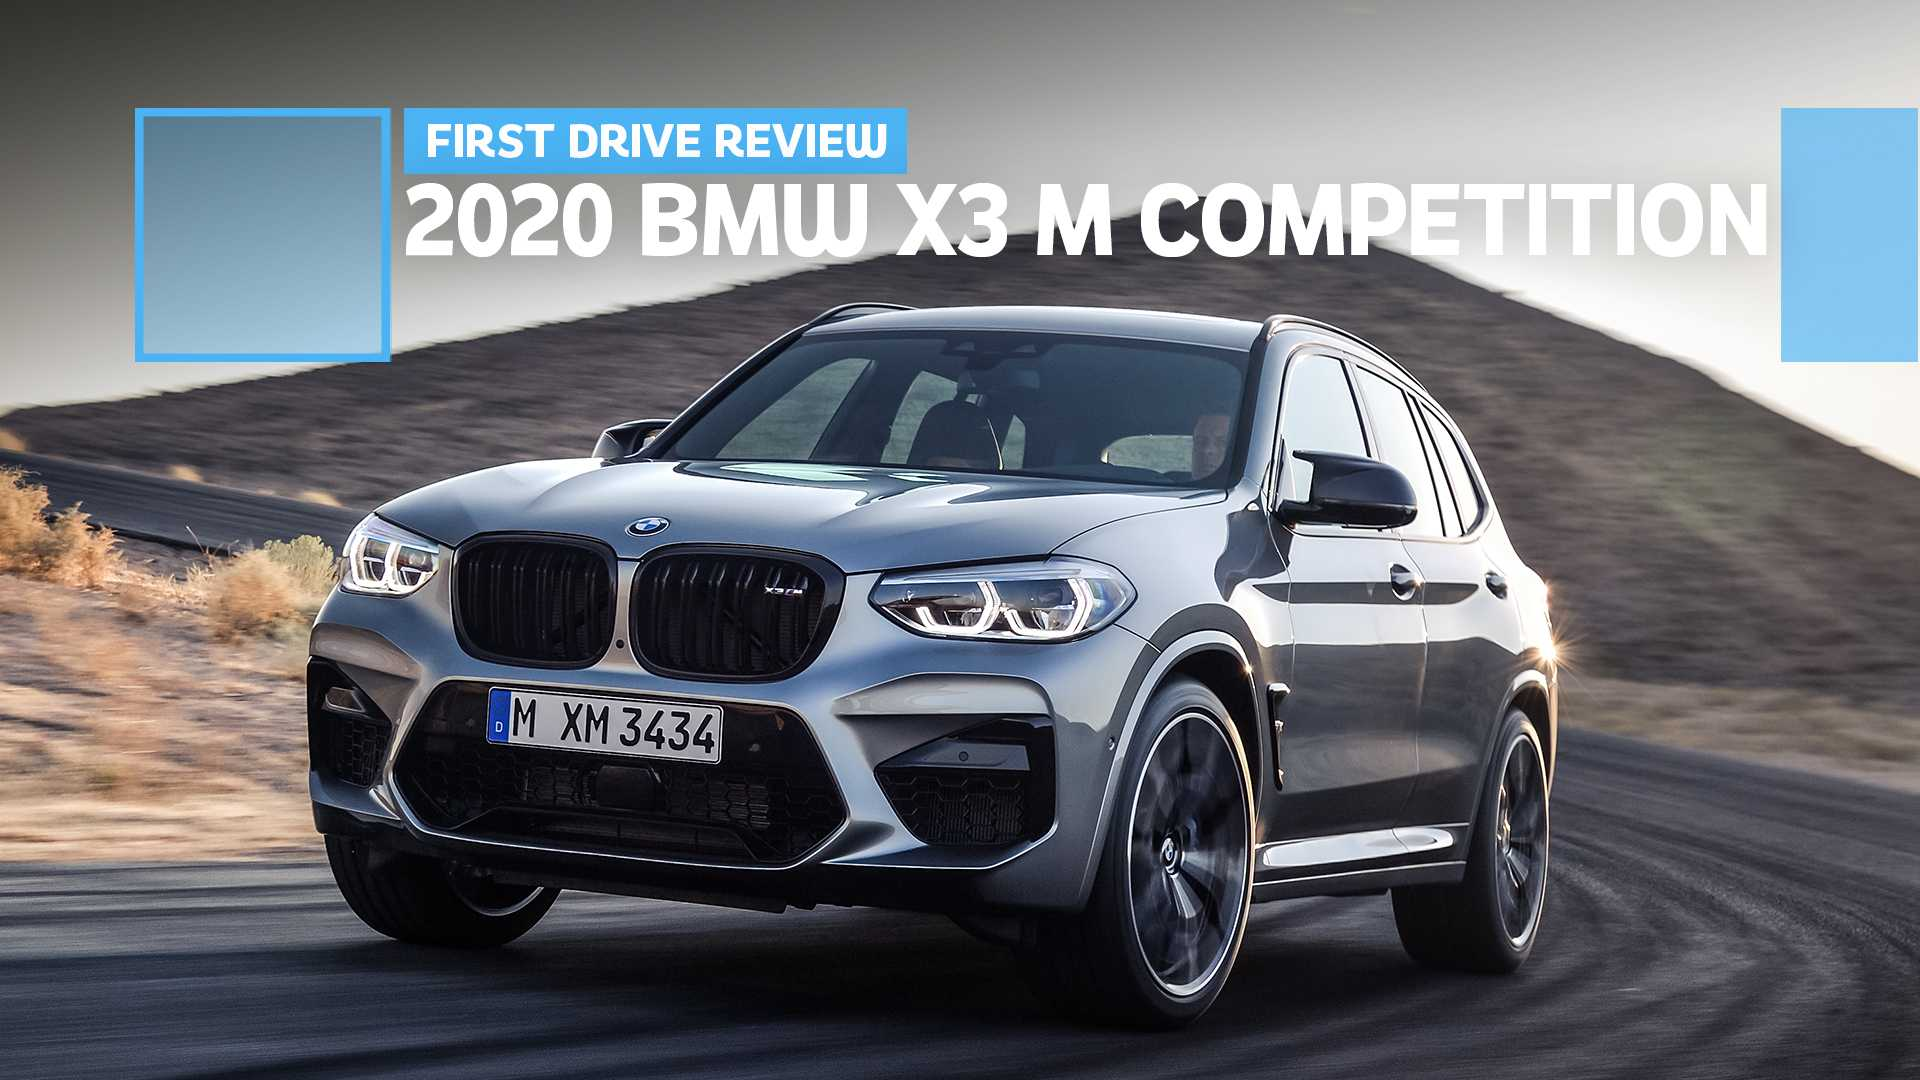 83 The 2020 BMW X3M Ordering Guide Speed Test for 2020 BMW X3M Ordering Guide